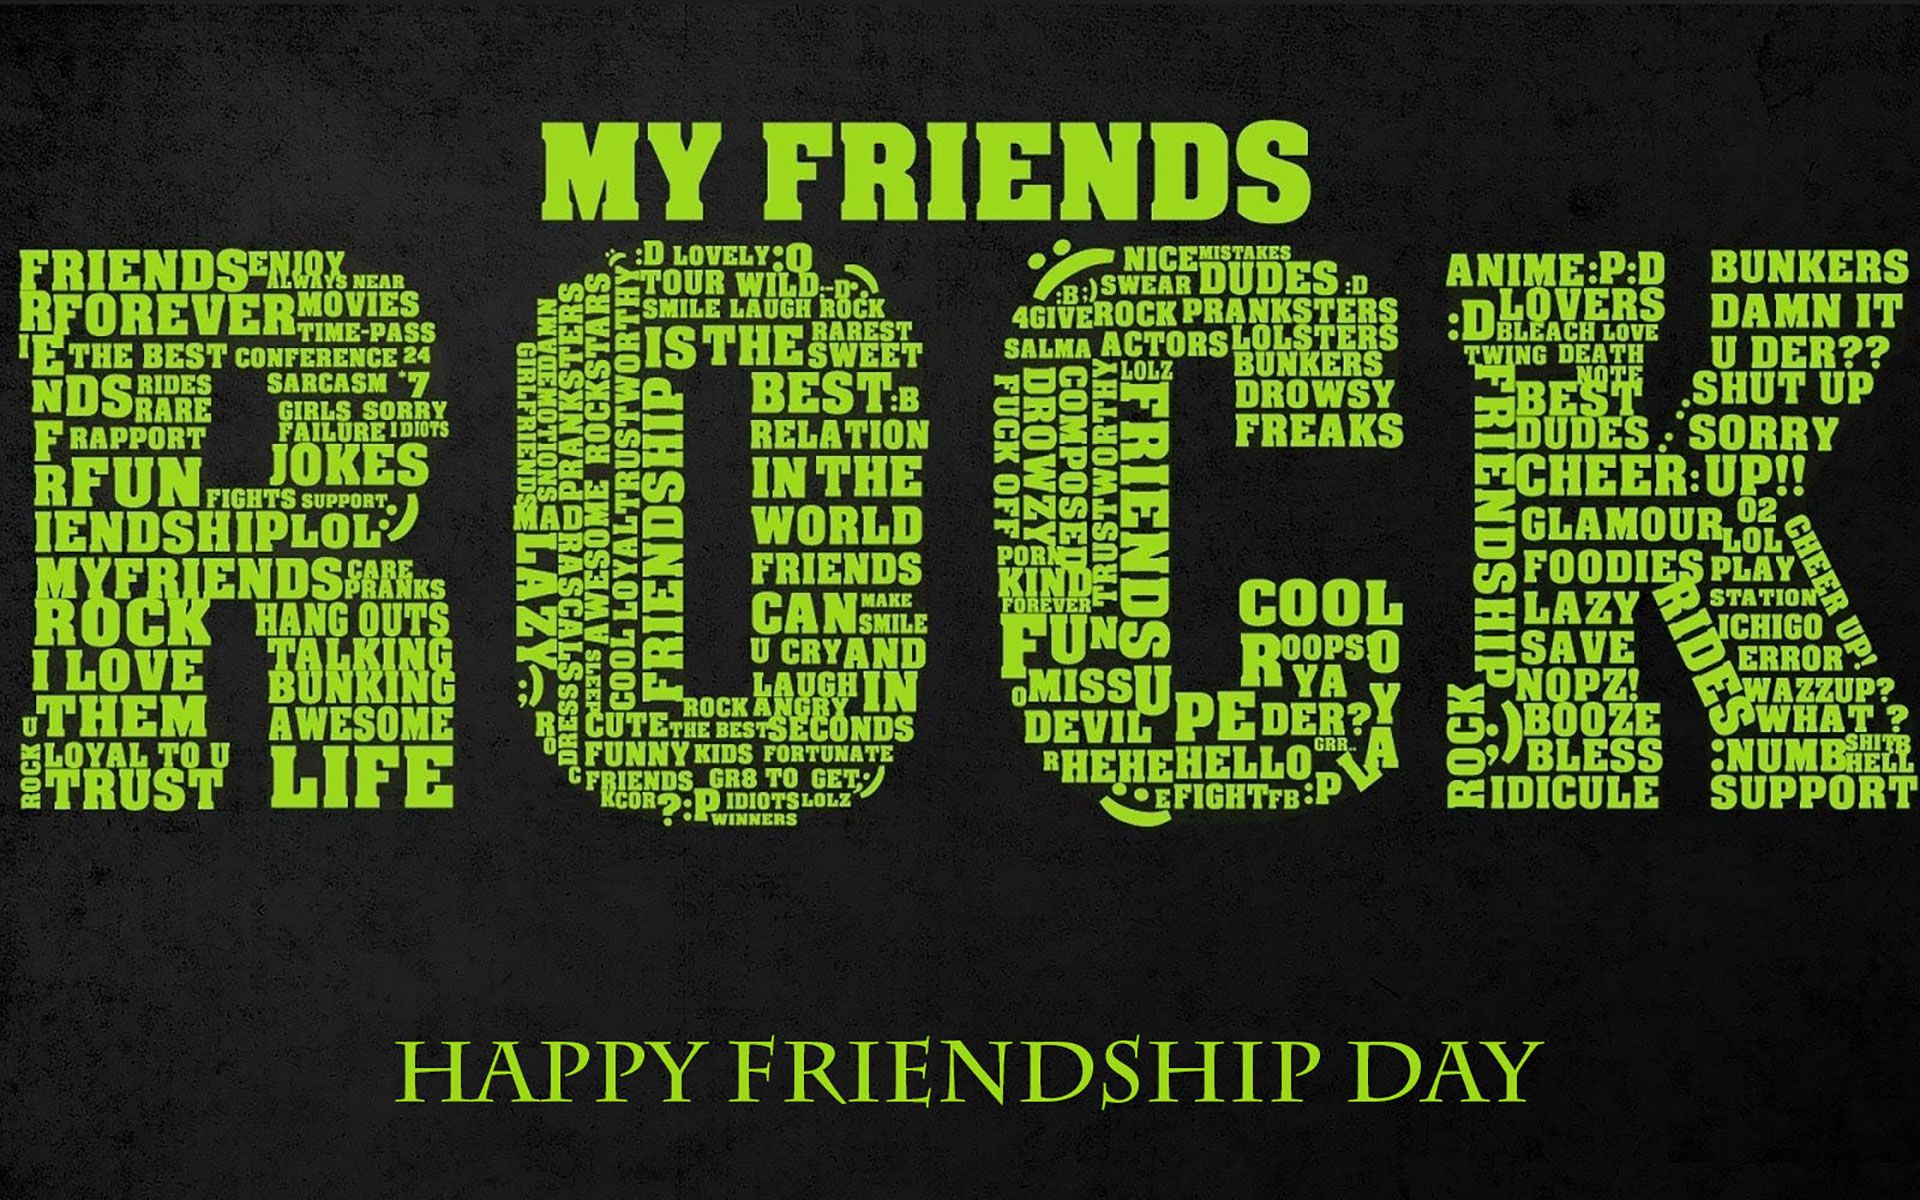 Happy friendship day wallpapers hd friendship wallpaper hd happy friendship day wallpapers hd altavistaventures Images